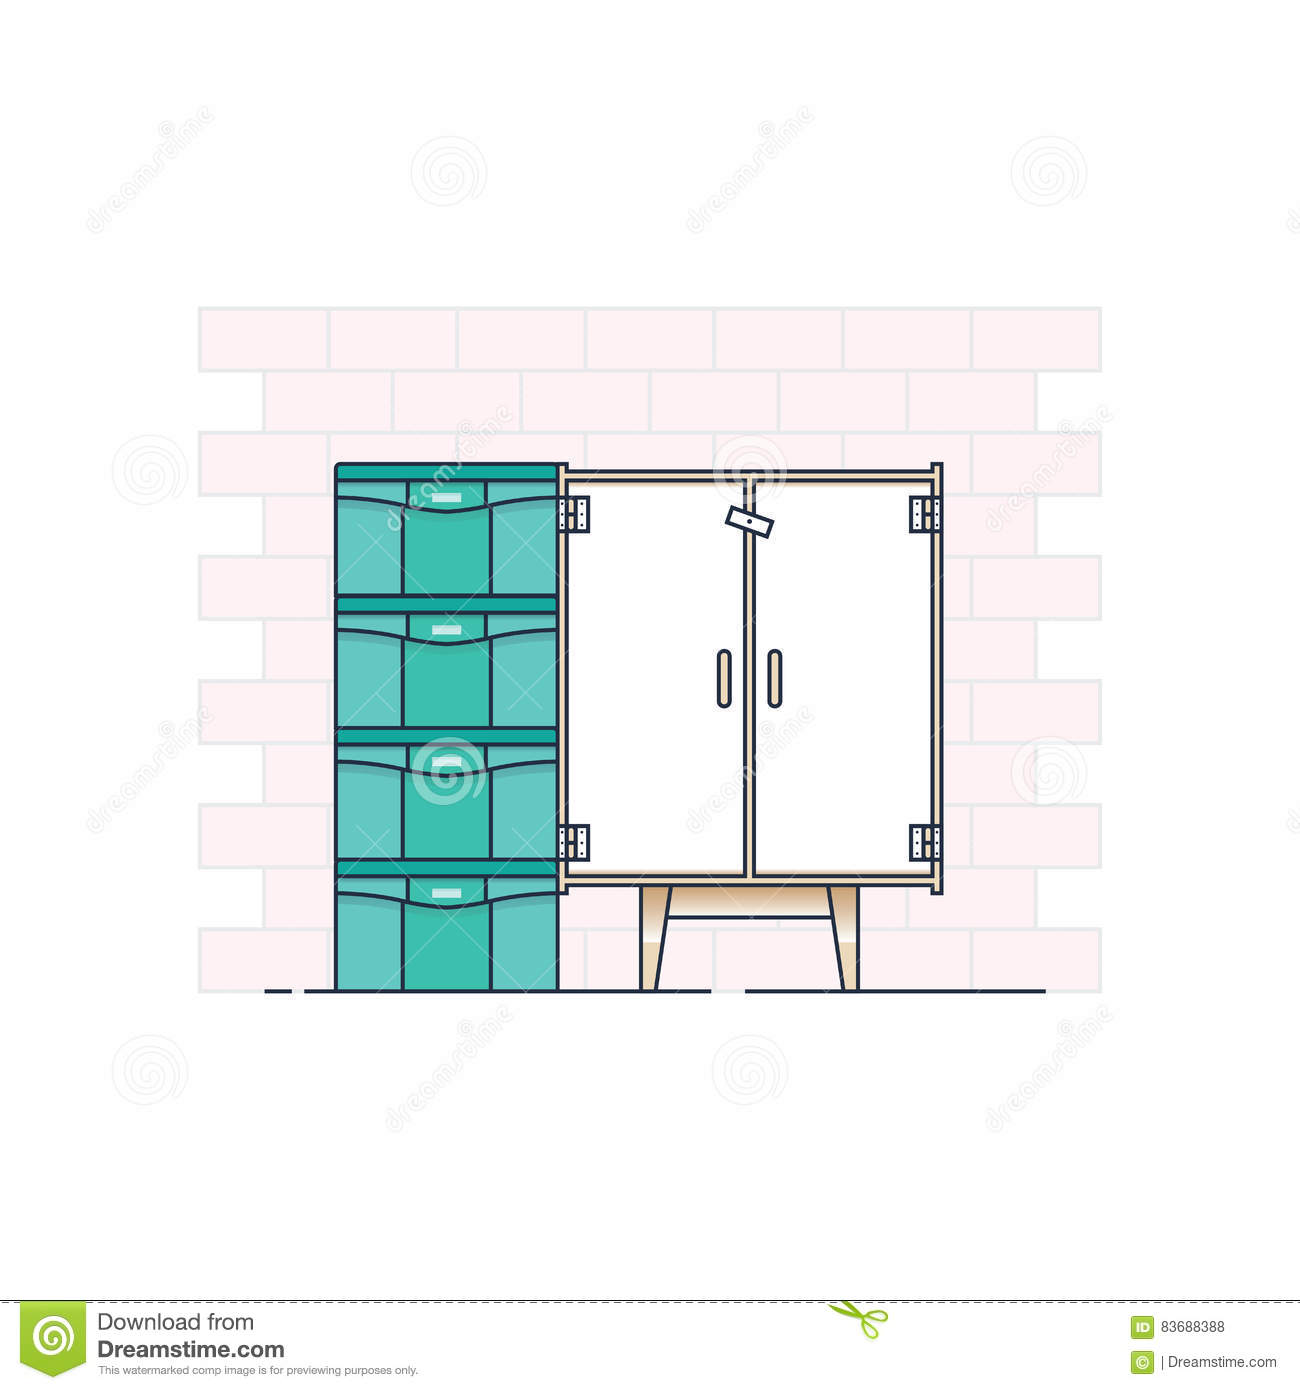 hight resolution of cupboard illustration home solution small tools deck family needs buy equipment